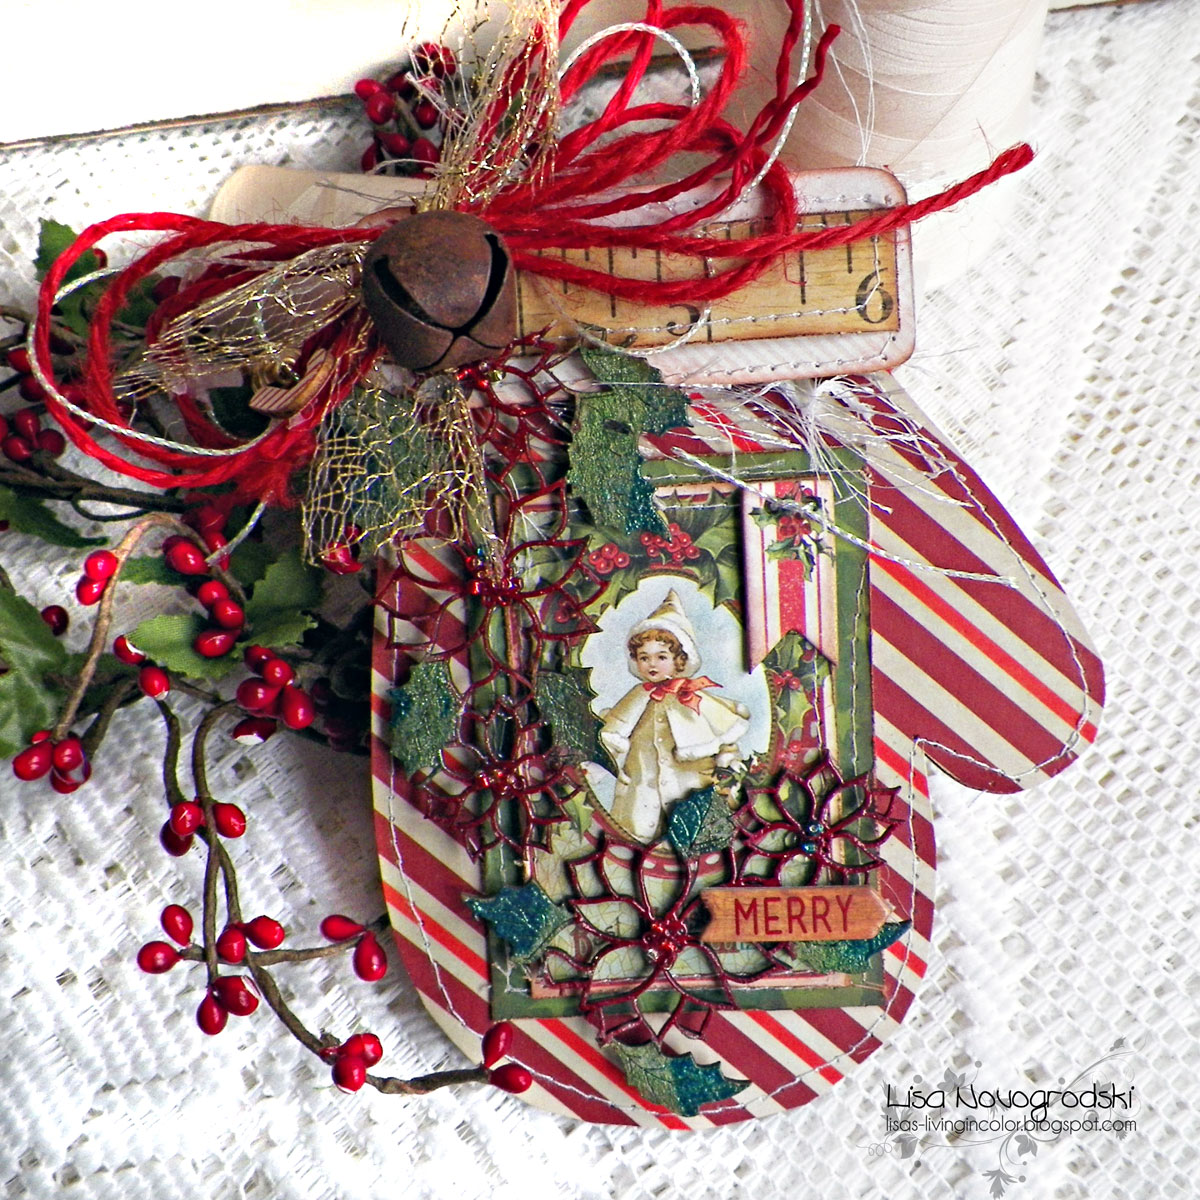 Merry Card by Lisa Novogrodski using BoBunny Christmas Collage